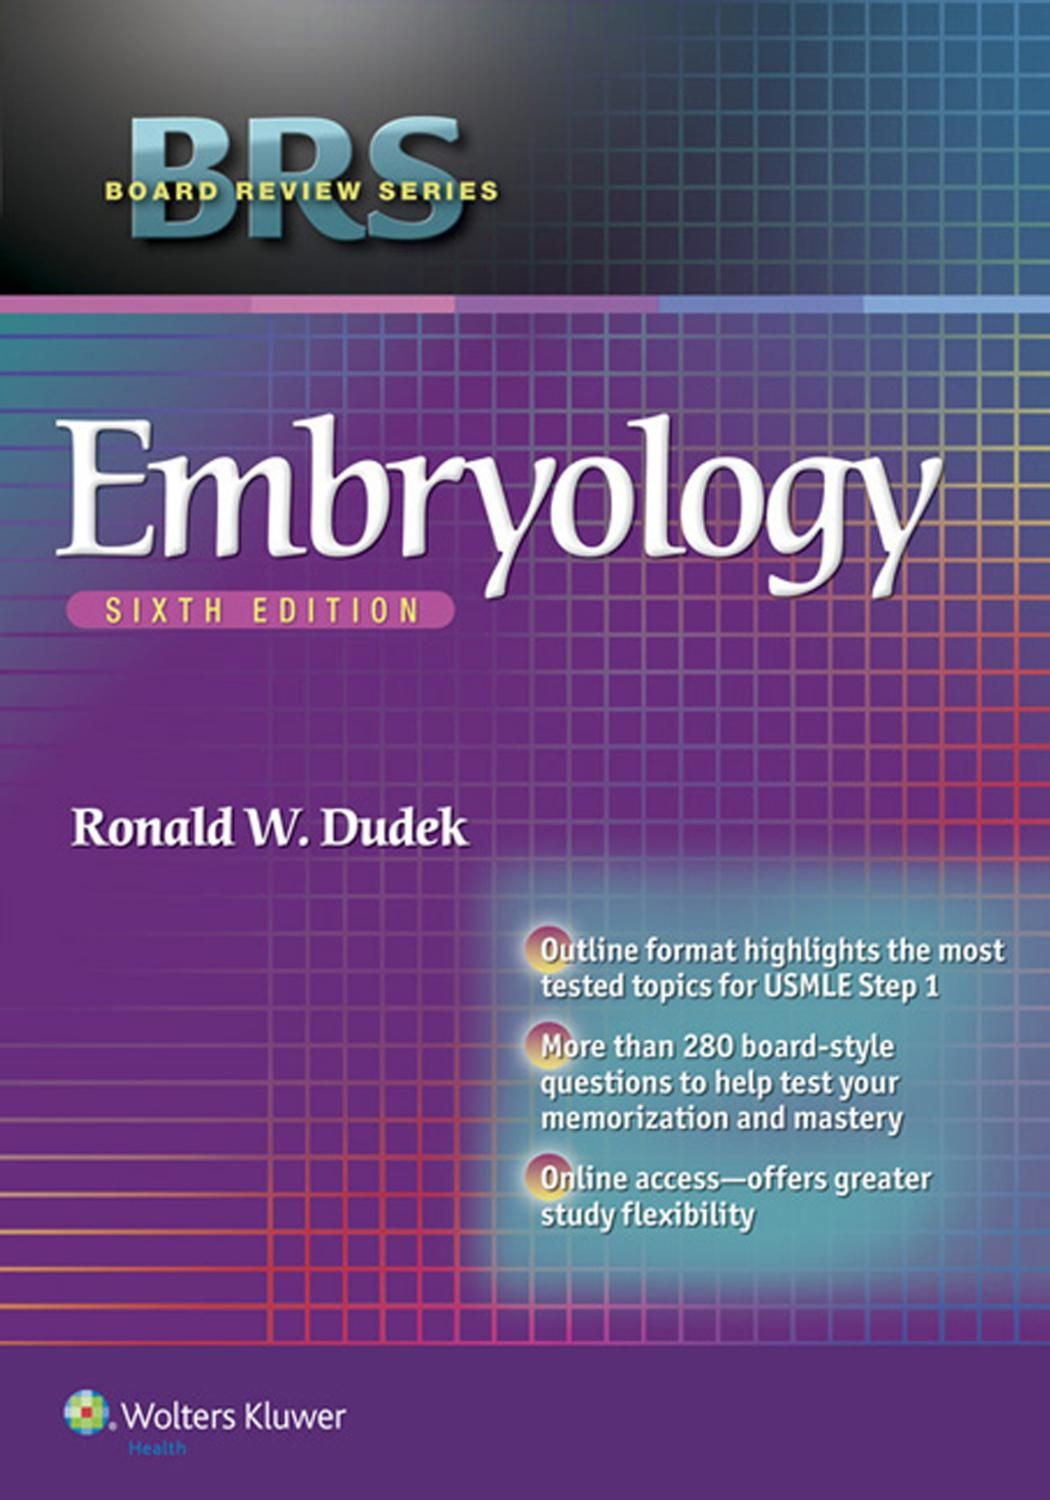 Books on physical therapy - Brs Embryology 6th Edition Pdf